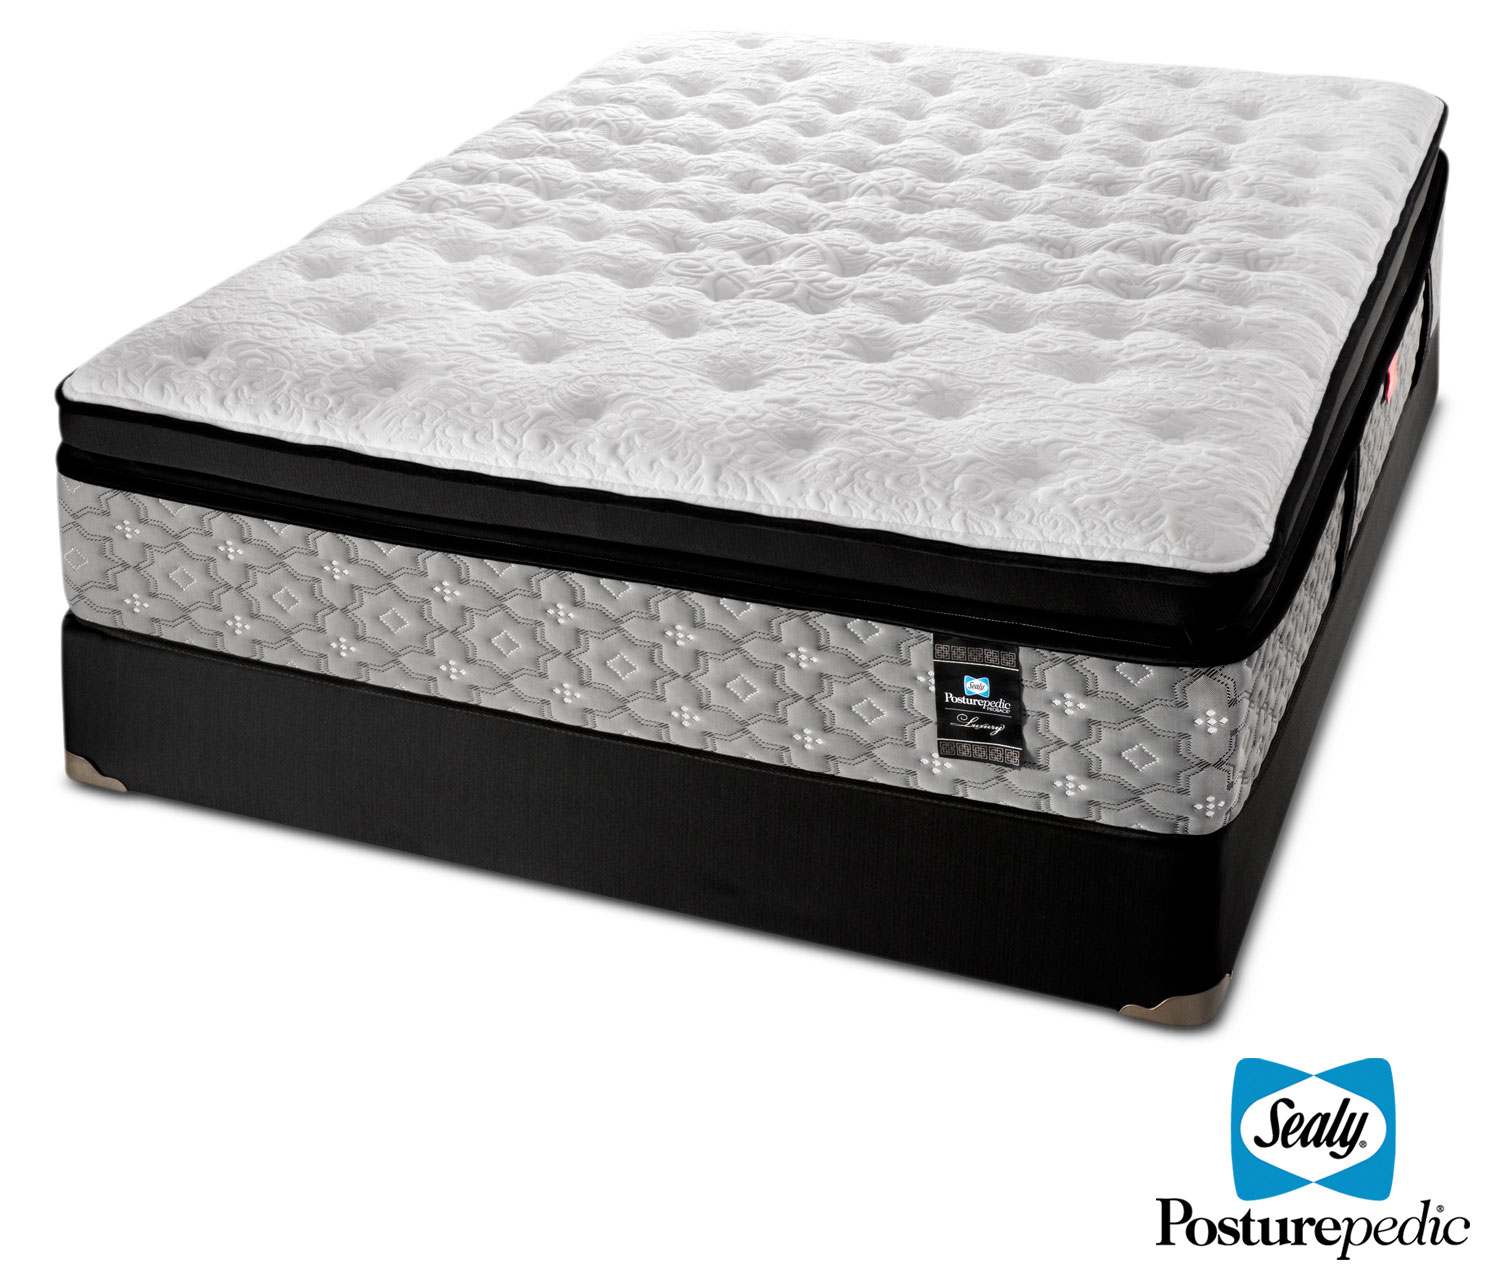 Queen Mattress And Boxspring Set Queen Size Mattress And Boxspring Set For Sale View Paula